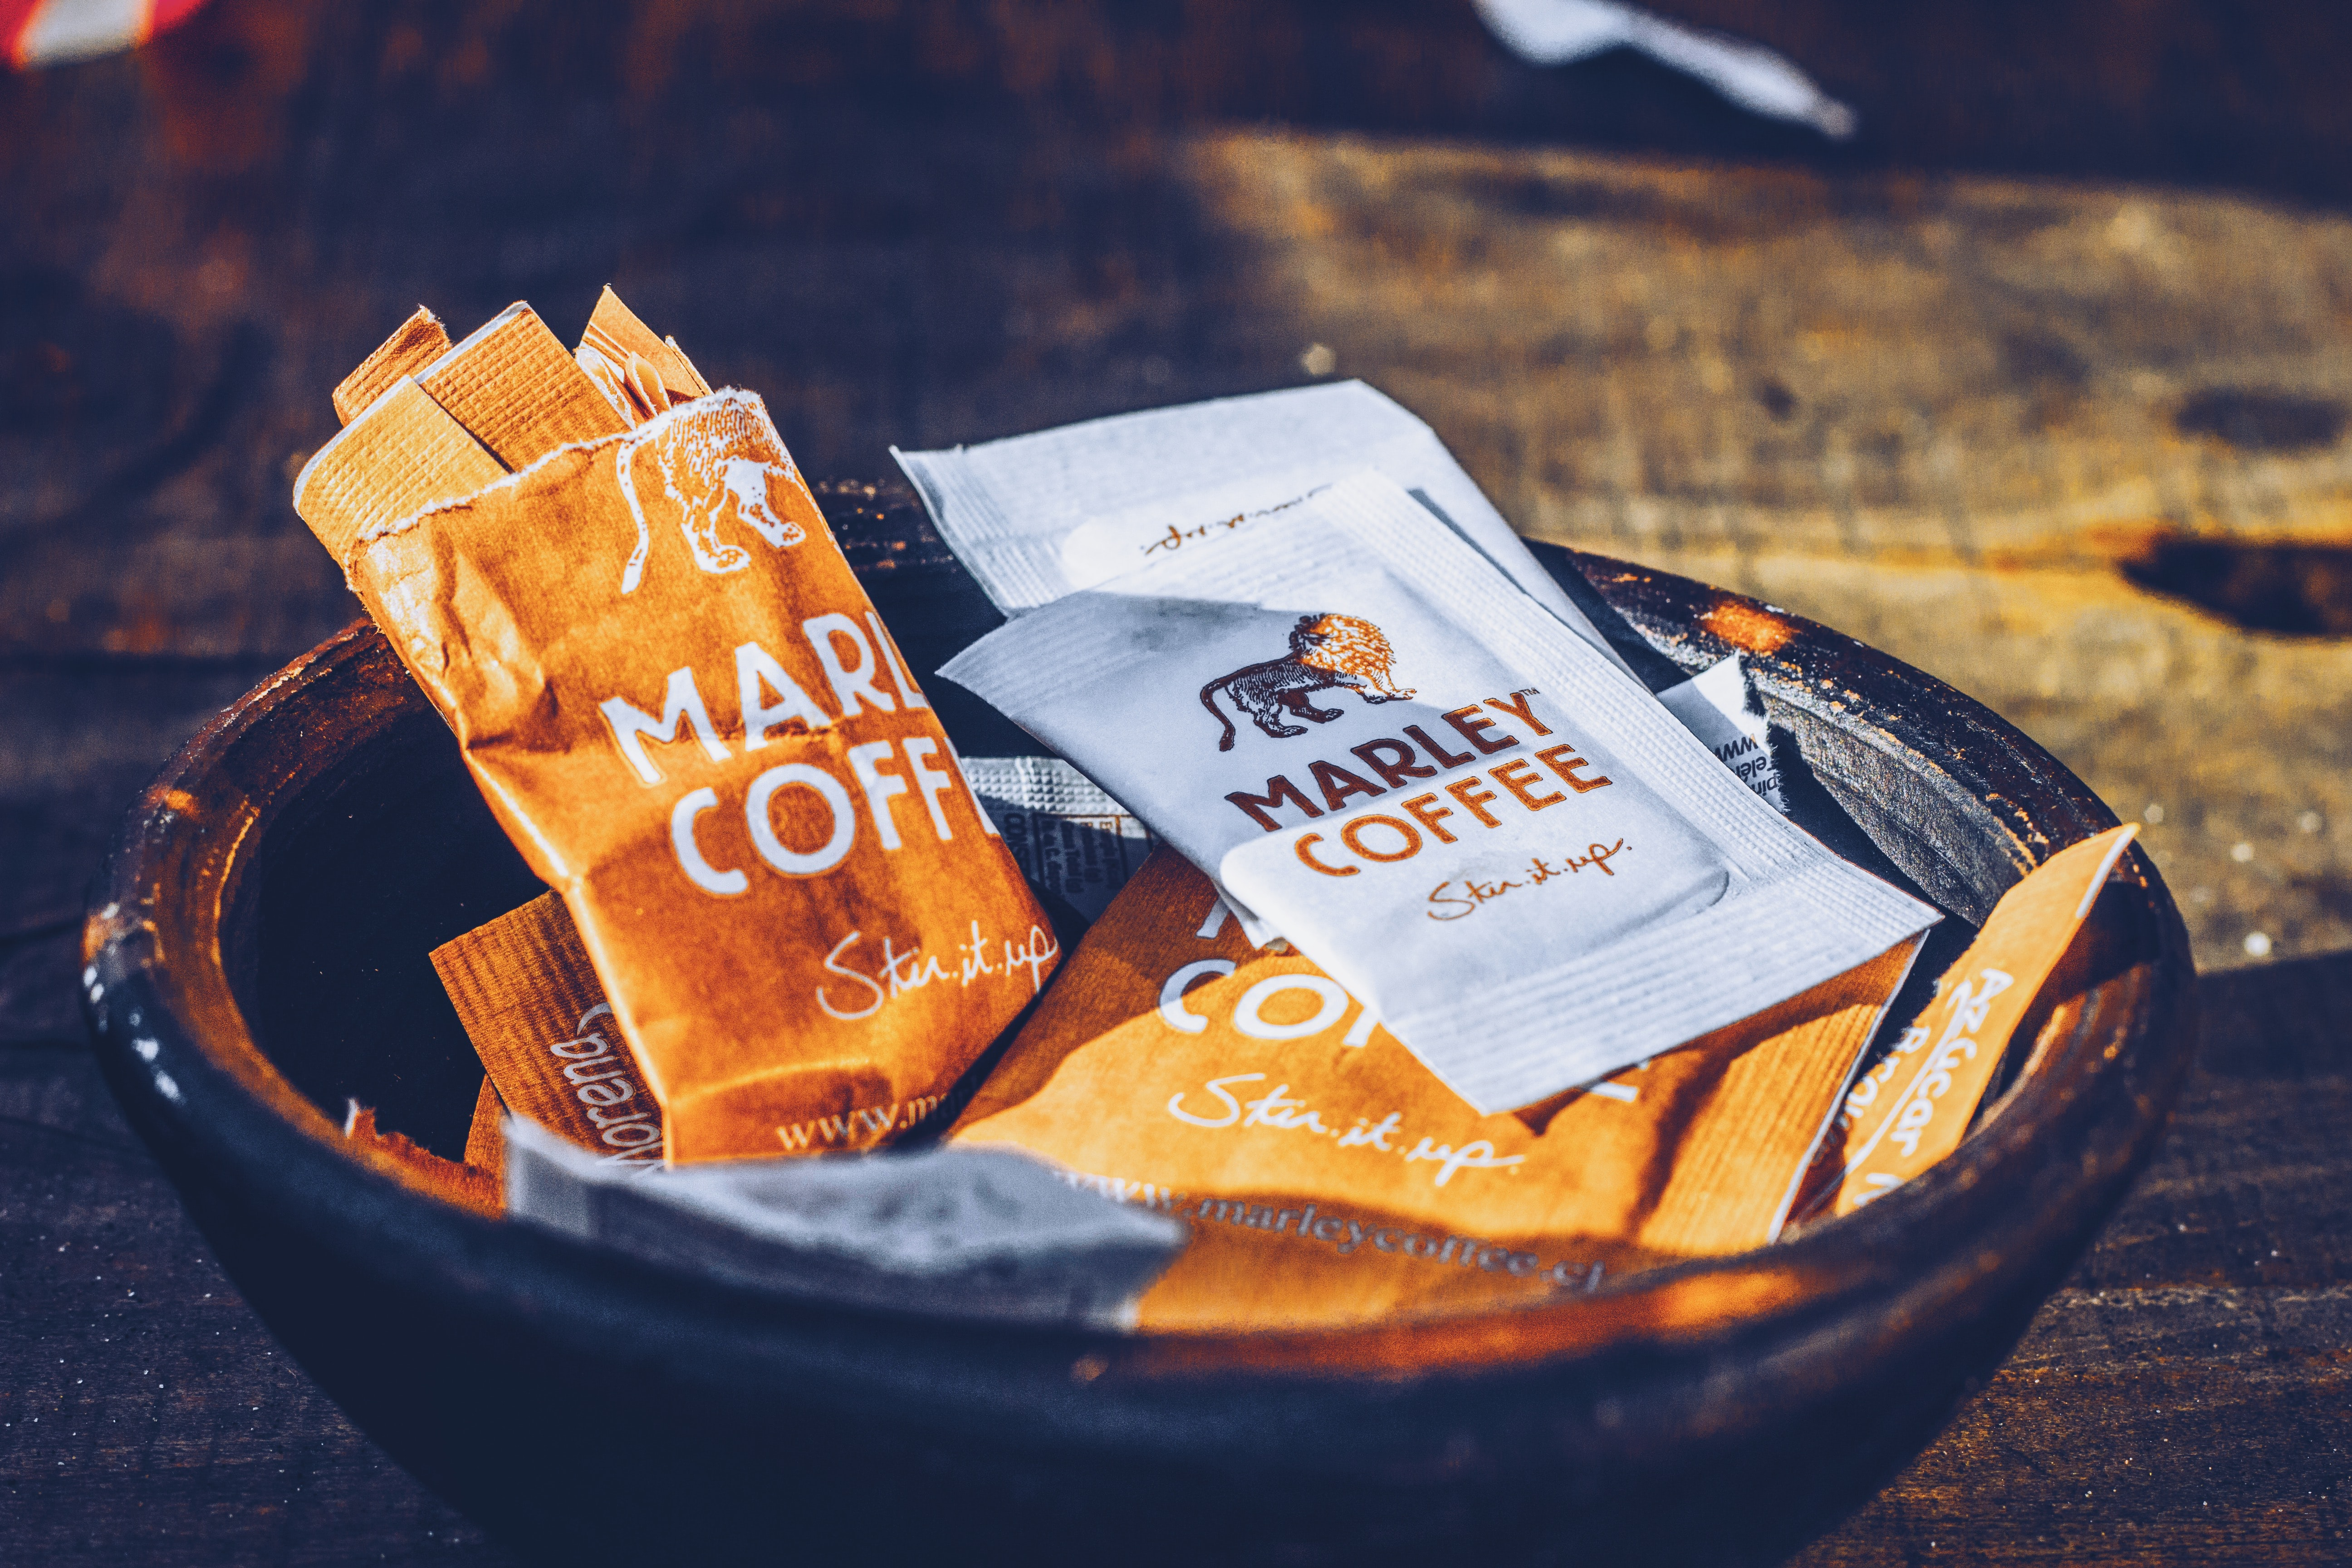 A bowl of Marley Coffee packets.